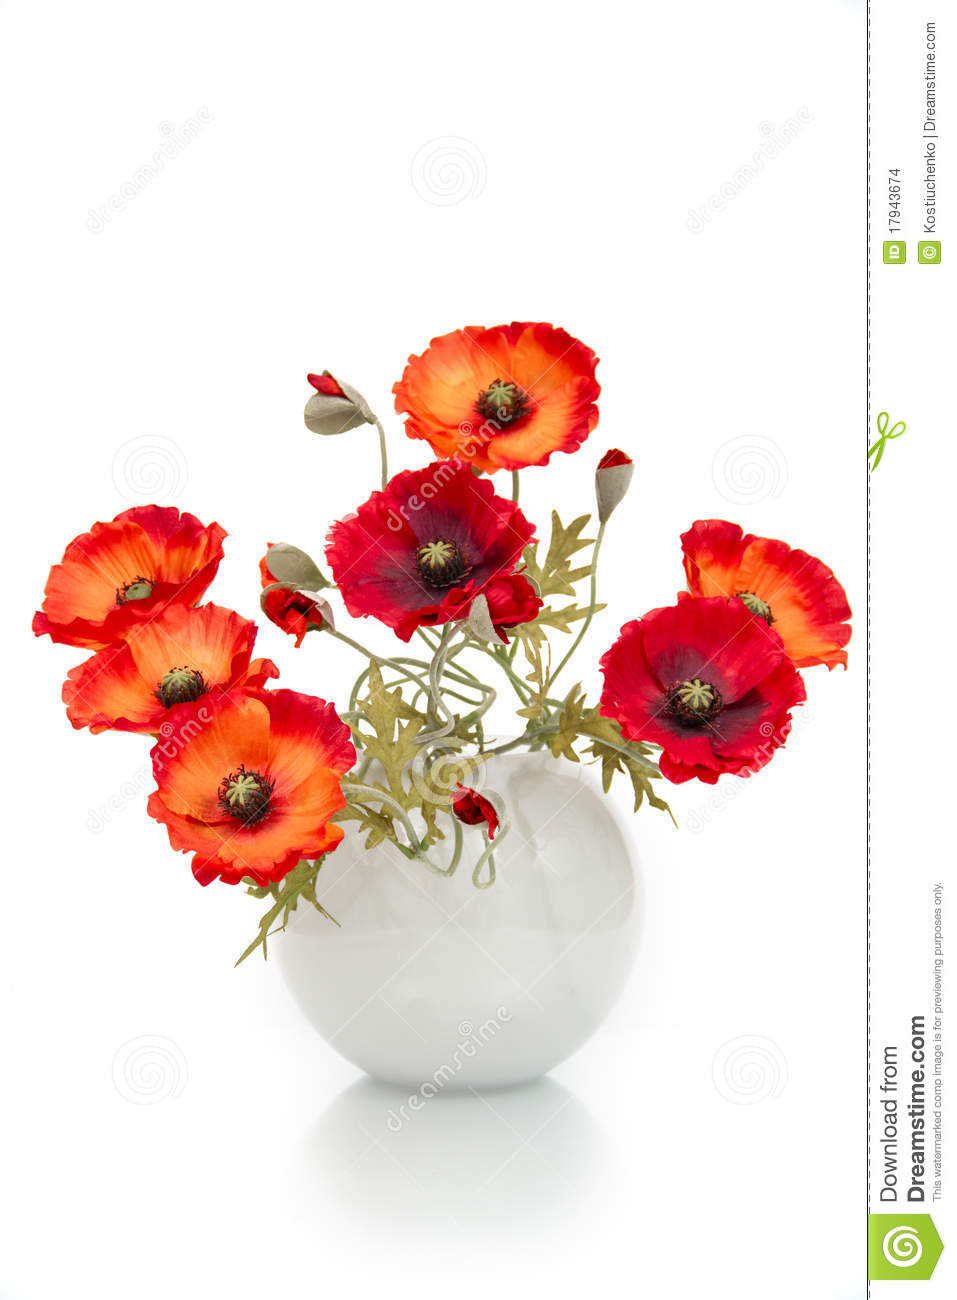 Bouquet Of Artificial Poppies In A Vase Stock Photo Image Of Orange Flowers 17943674